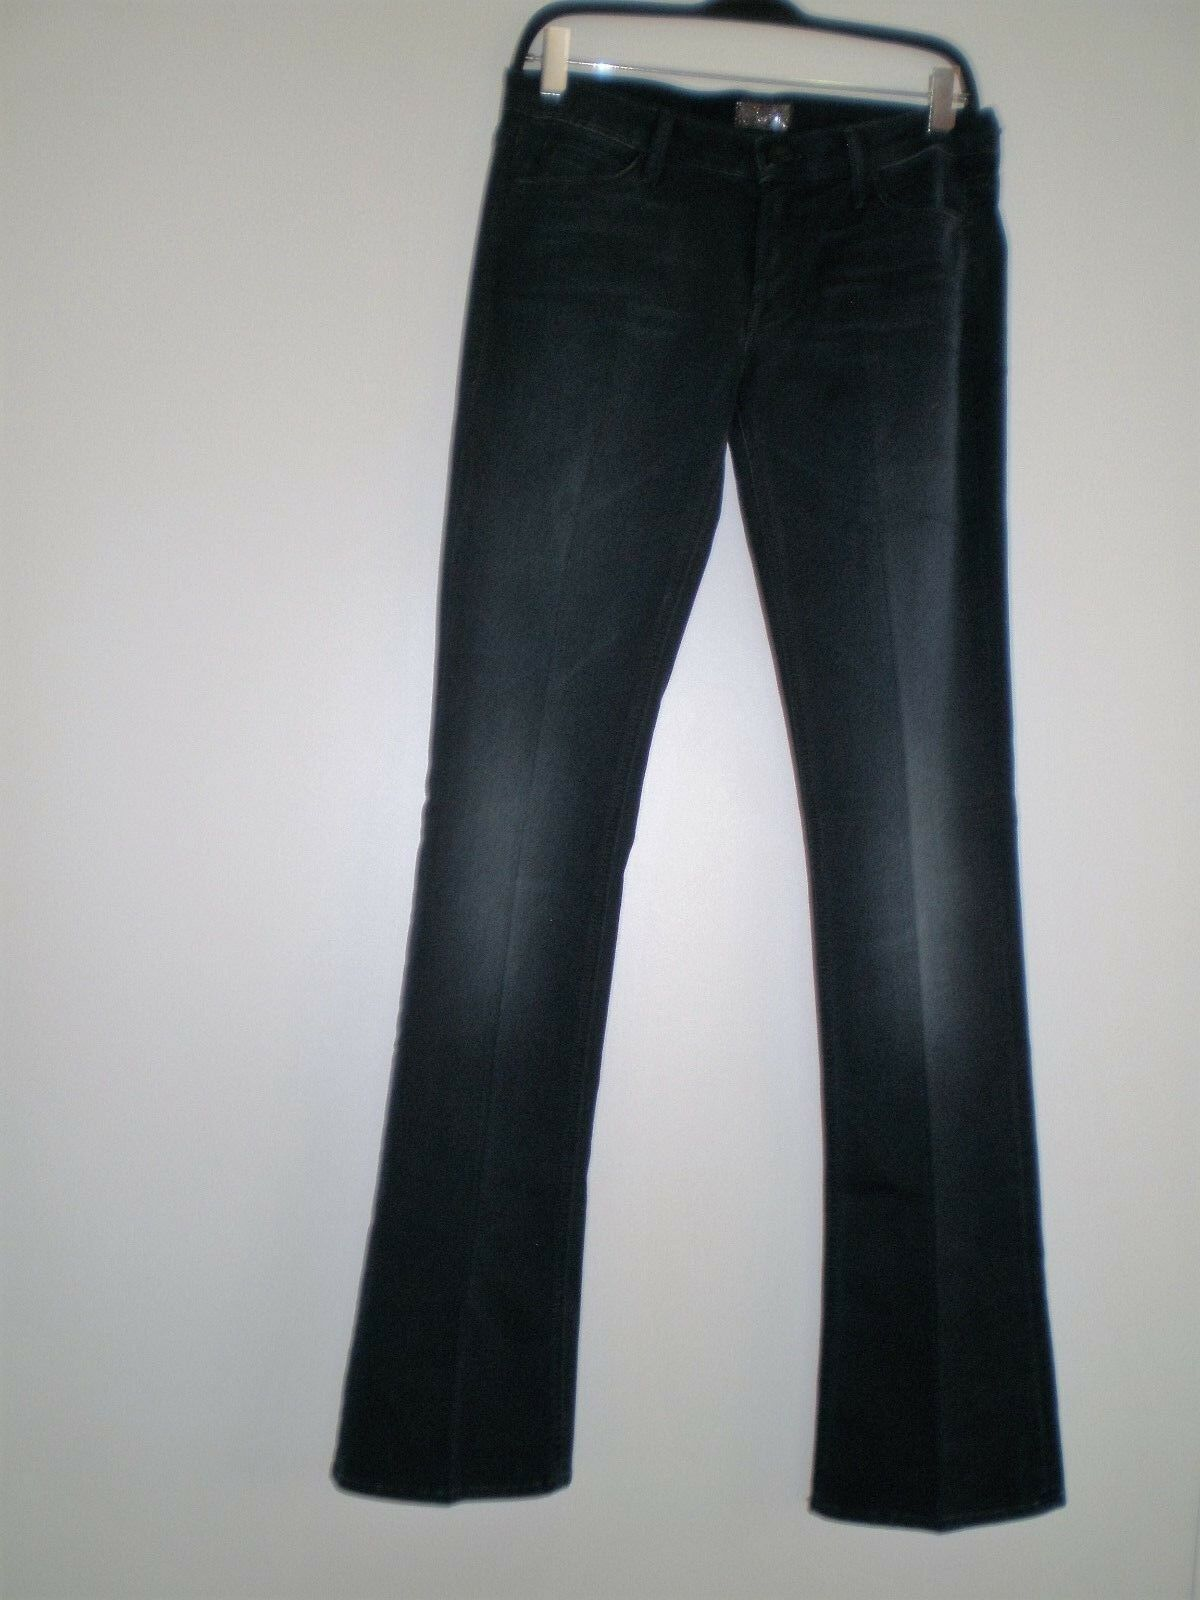 Jeans de Mother, The couriraway, straightleg, Bleu foncé, SALE